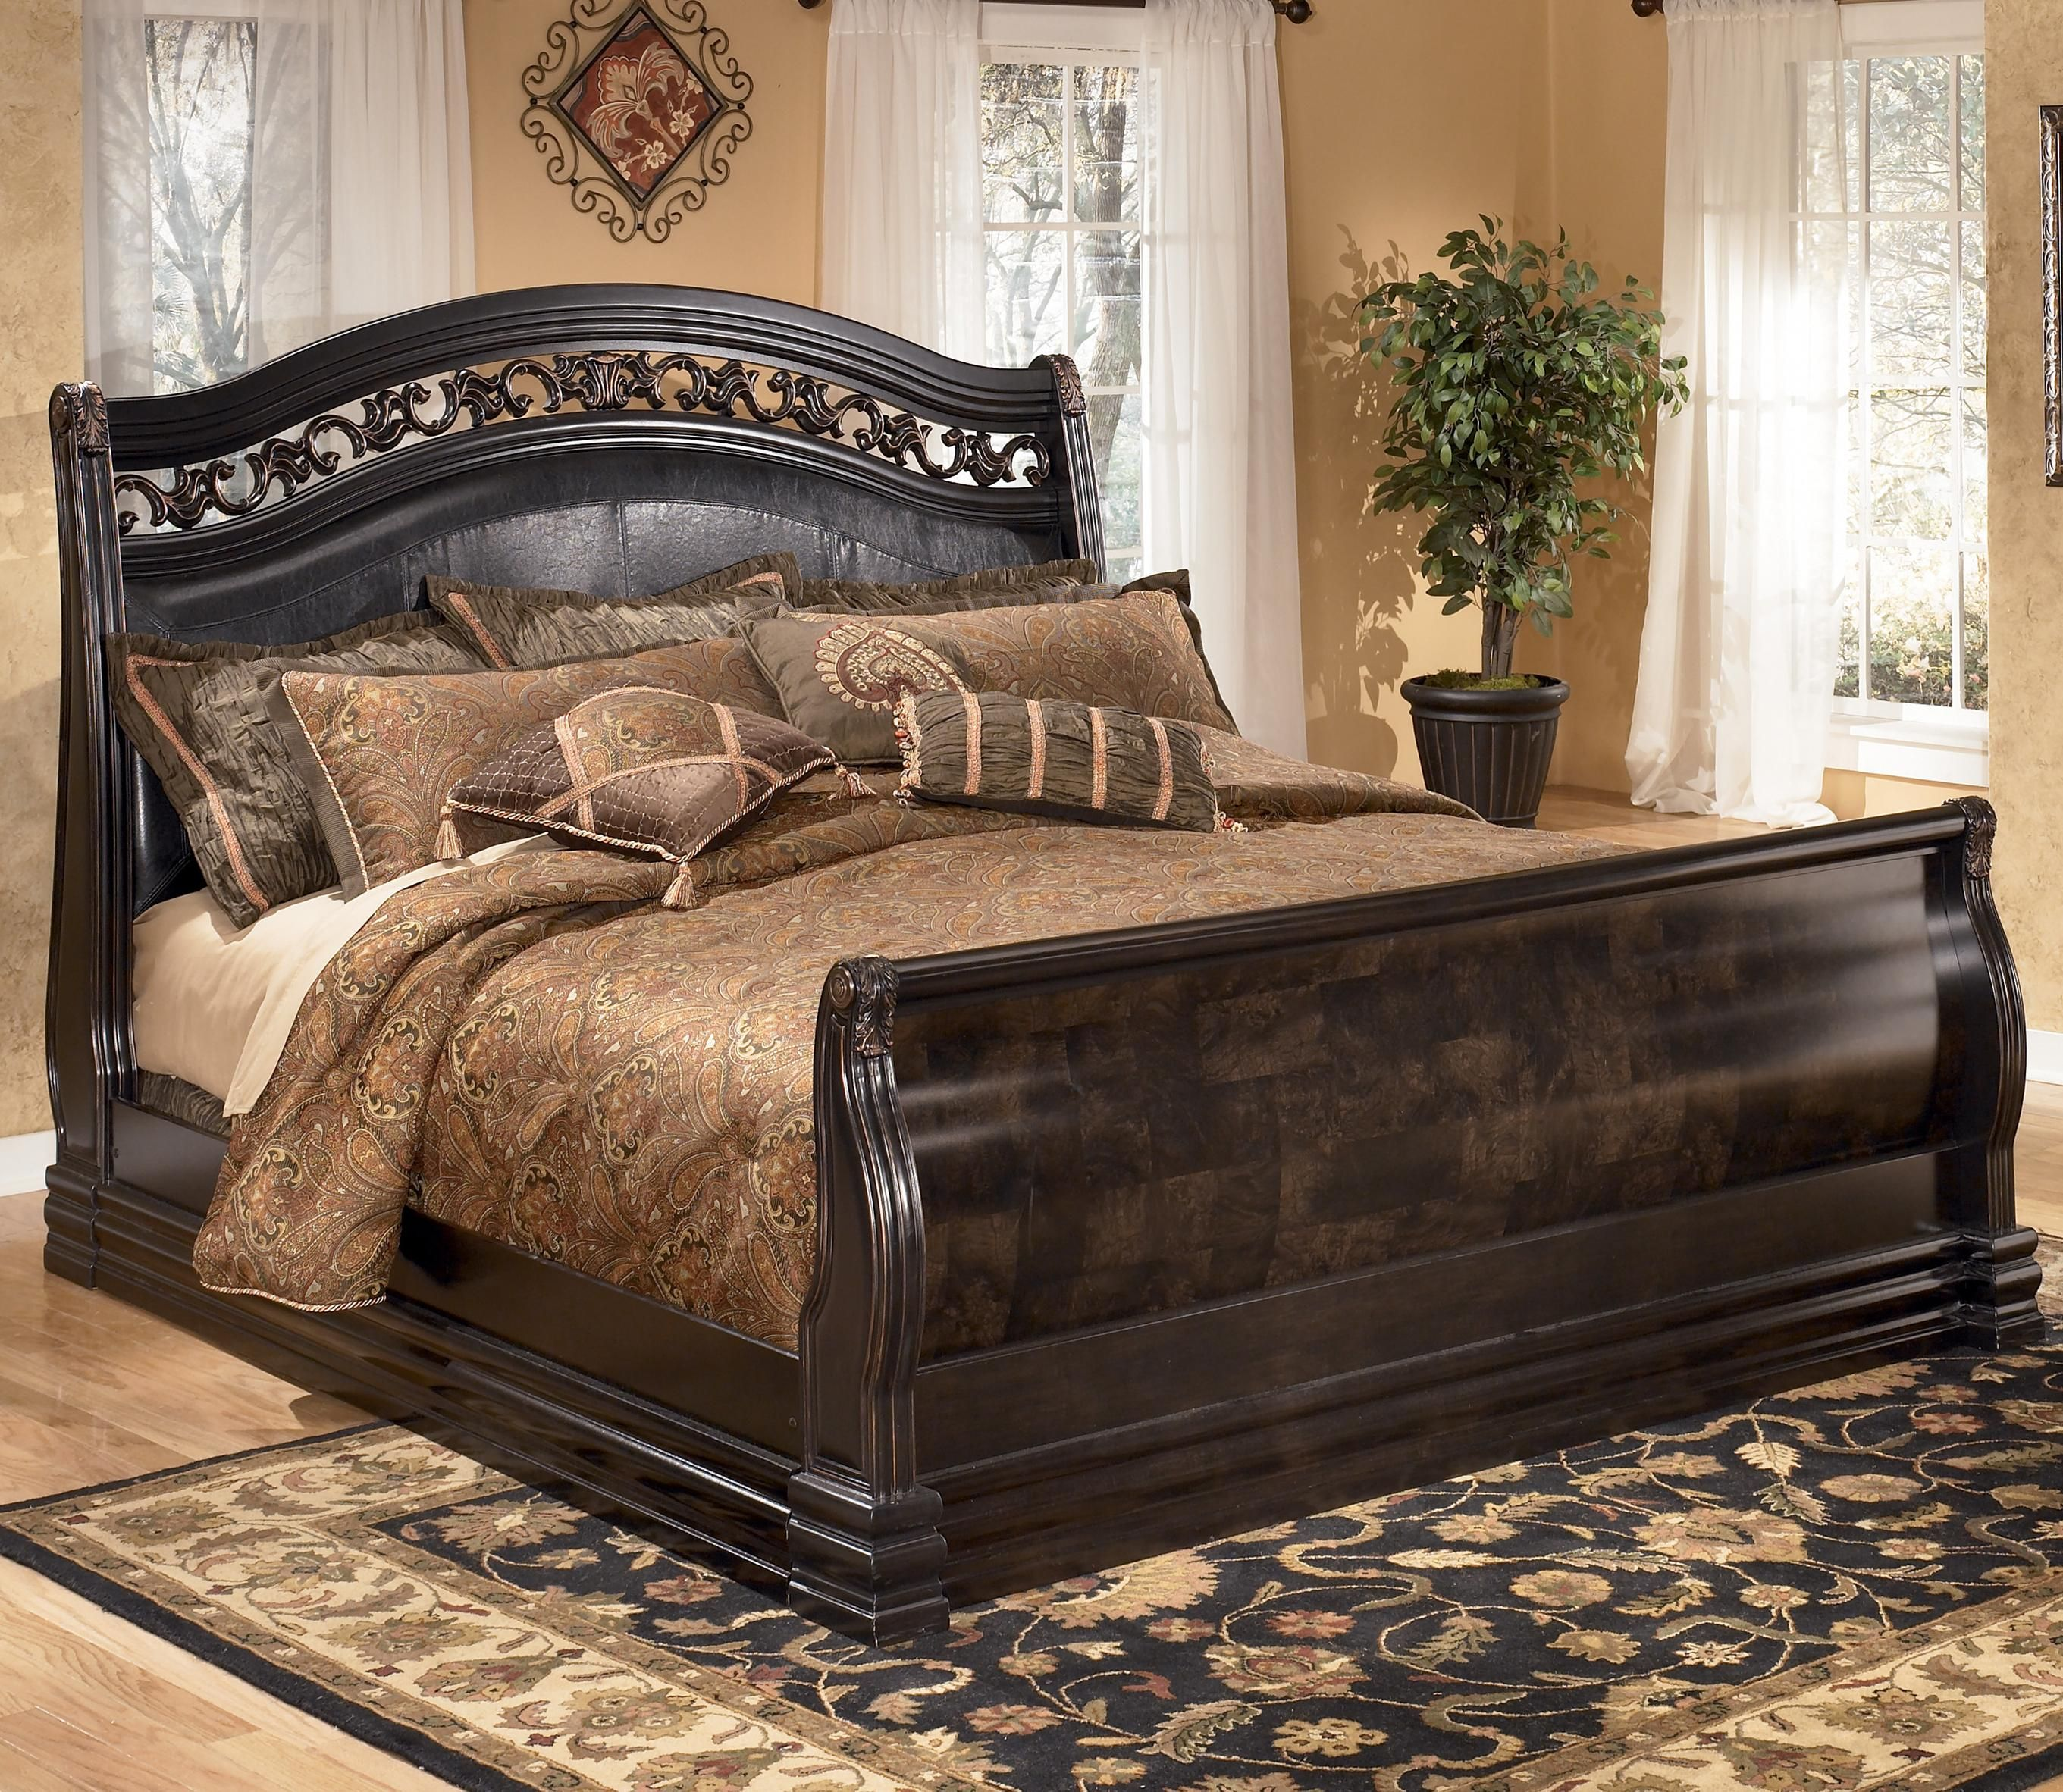 Suzannah Queen Sleigh Bed With Large Moulding By Signature Design By Ashley    Gardiners Furniture